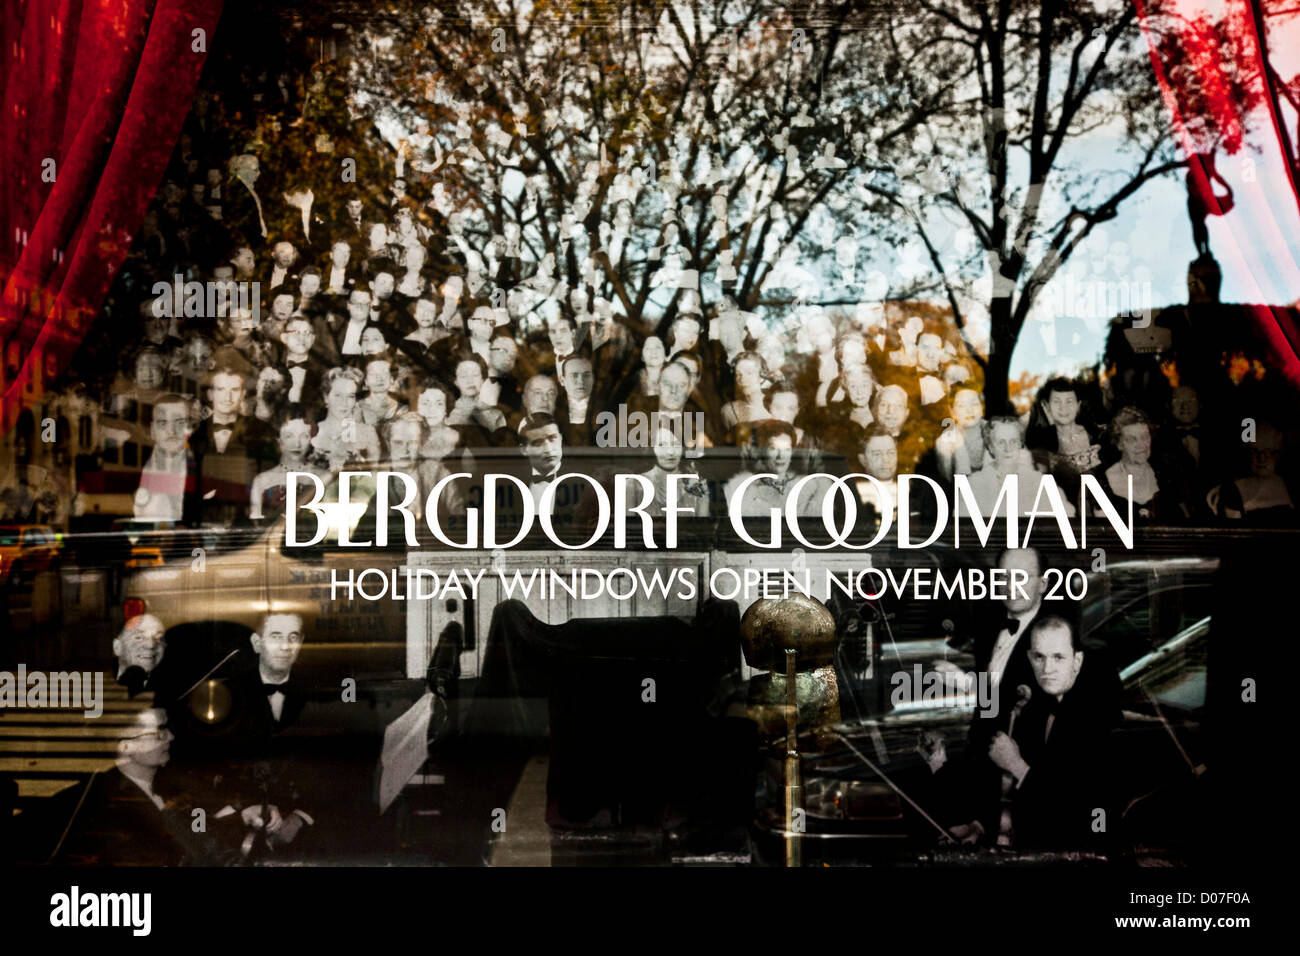 New York, USA. 19th November 2012. Fifth Avenue department store Bergdorf Goodman uses a display window to announce - Stock Image